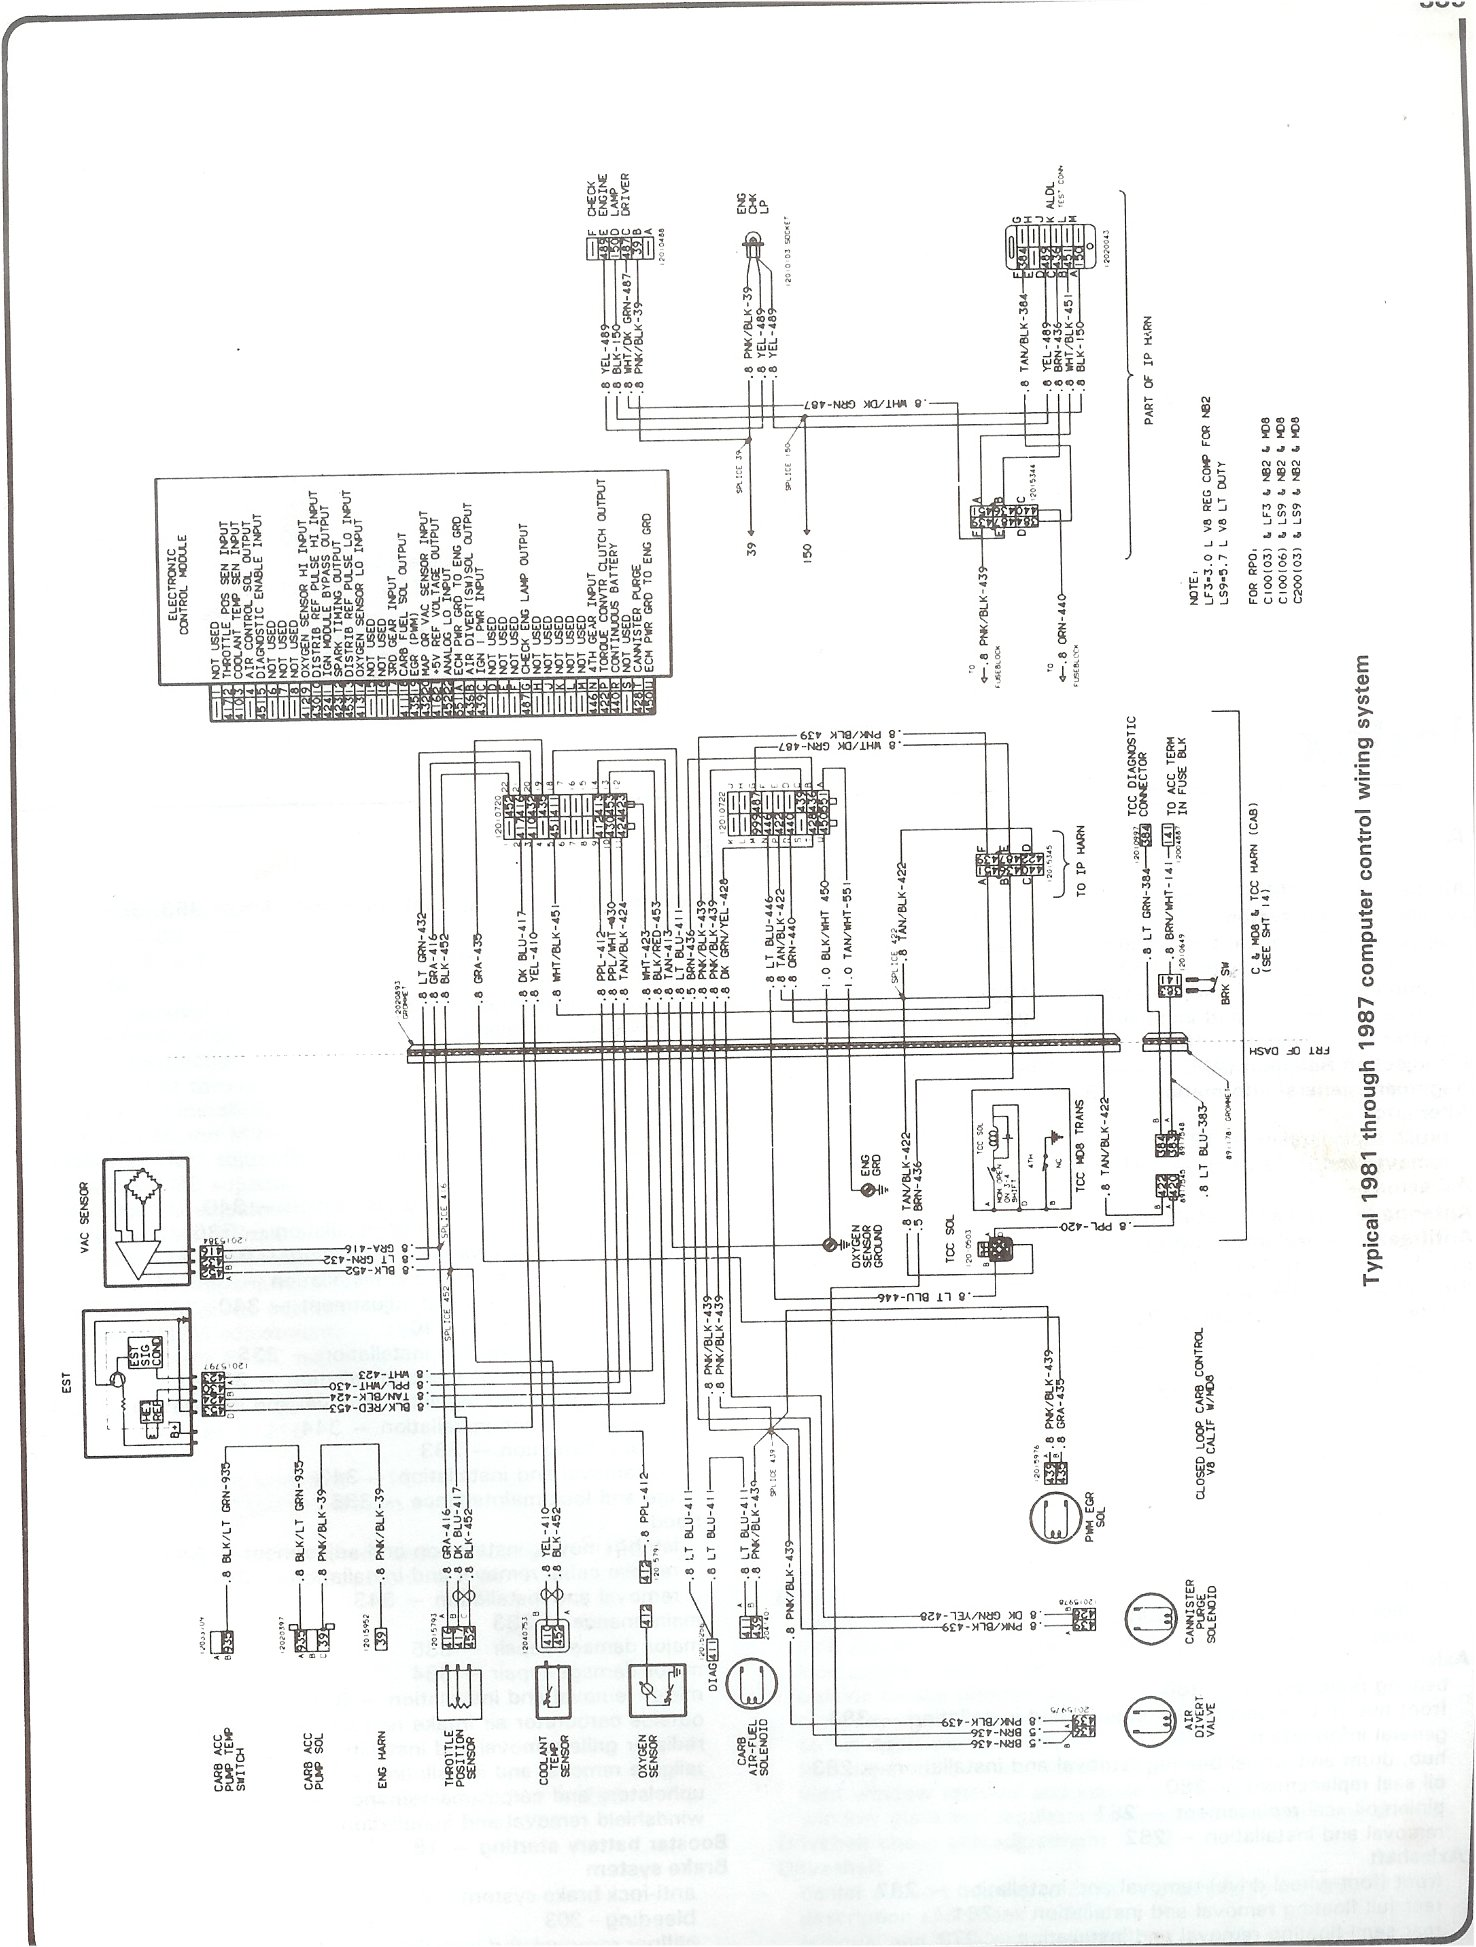 complete 73 87 wiring diagrams rh forum 73 87chevytrucks com 2001 Chevy S10 Wiring Diagram 1986 S10 Firewall Wiring Harness